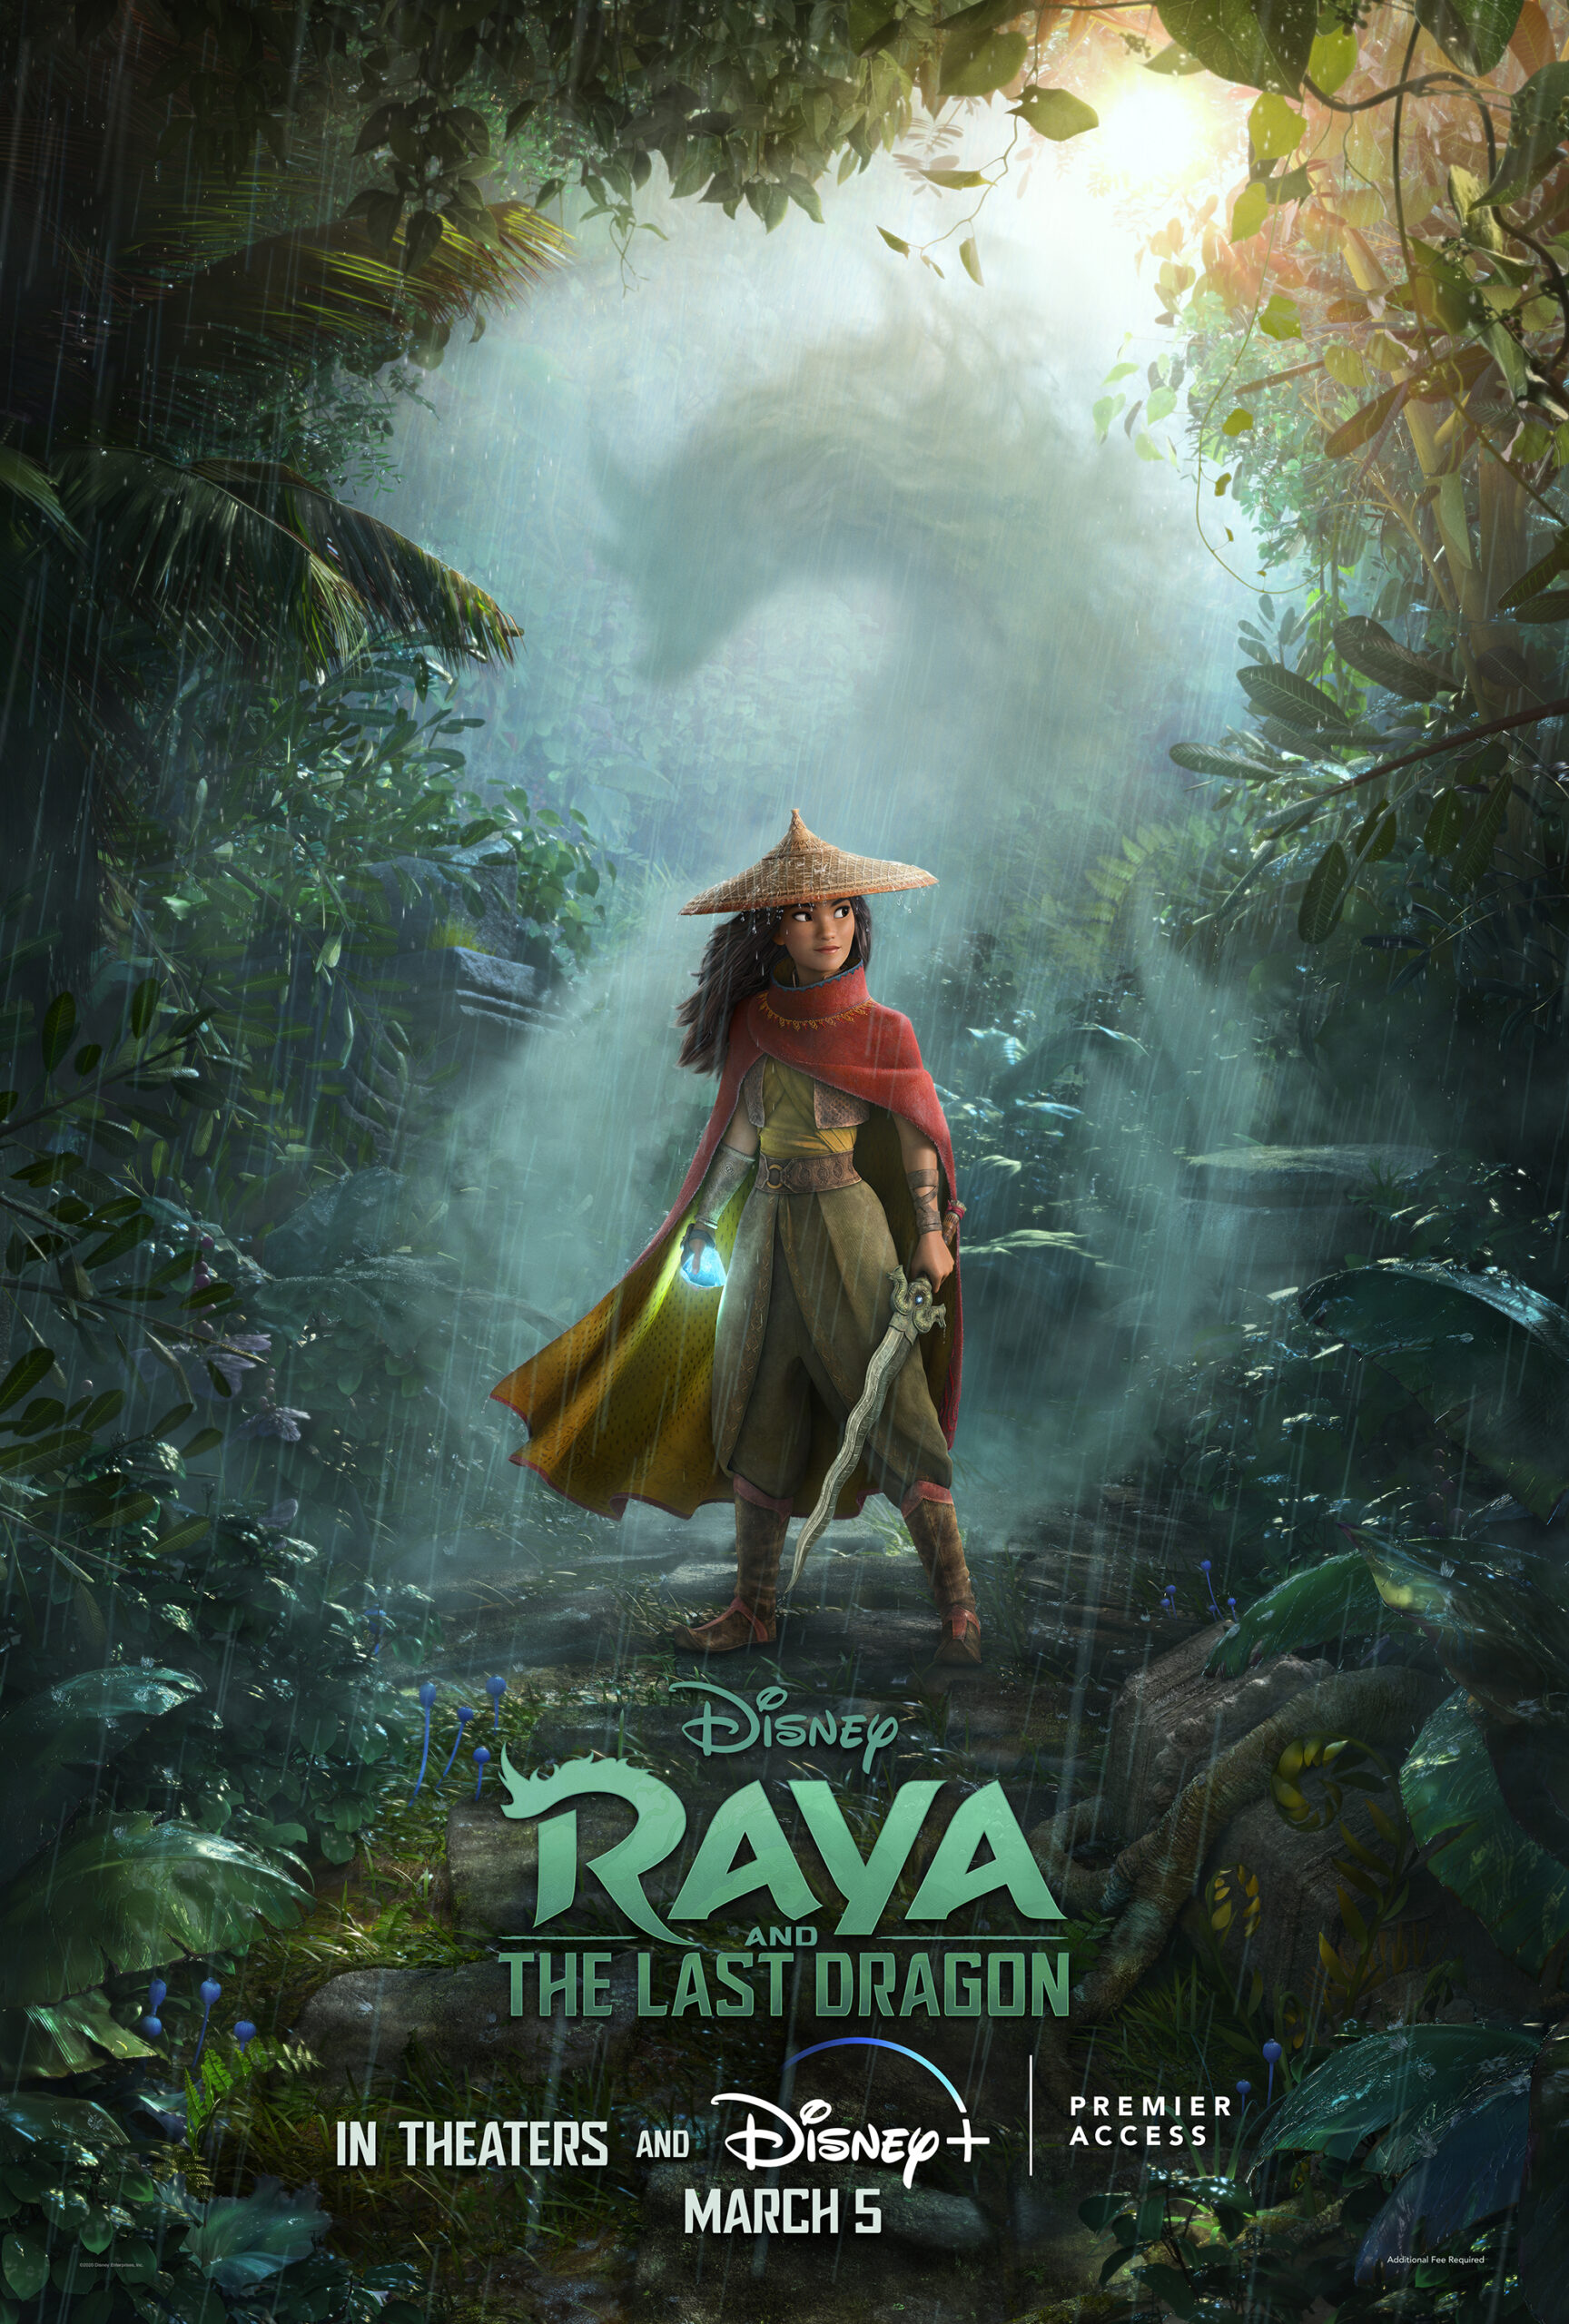 Disney fans are eagerly awaiting the next blockbuster release. This? Is a little sneak peek into the Raya and the Last Dragon characters.....who they are, and why they are important to the cast and creators of the film.